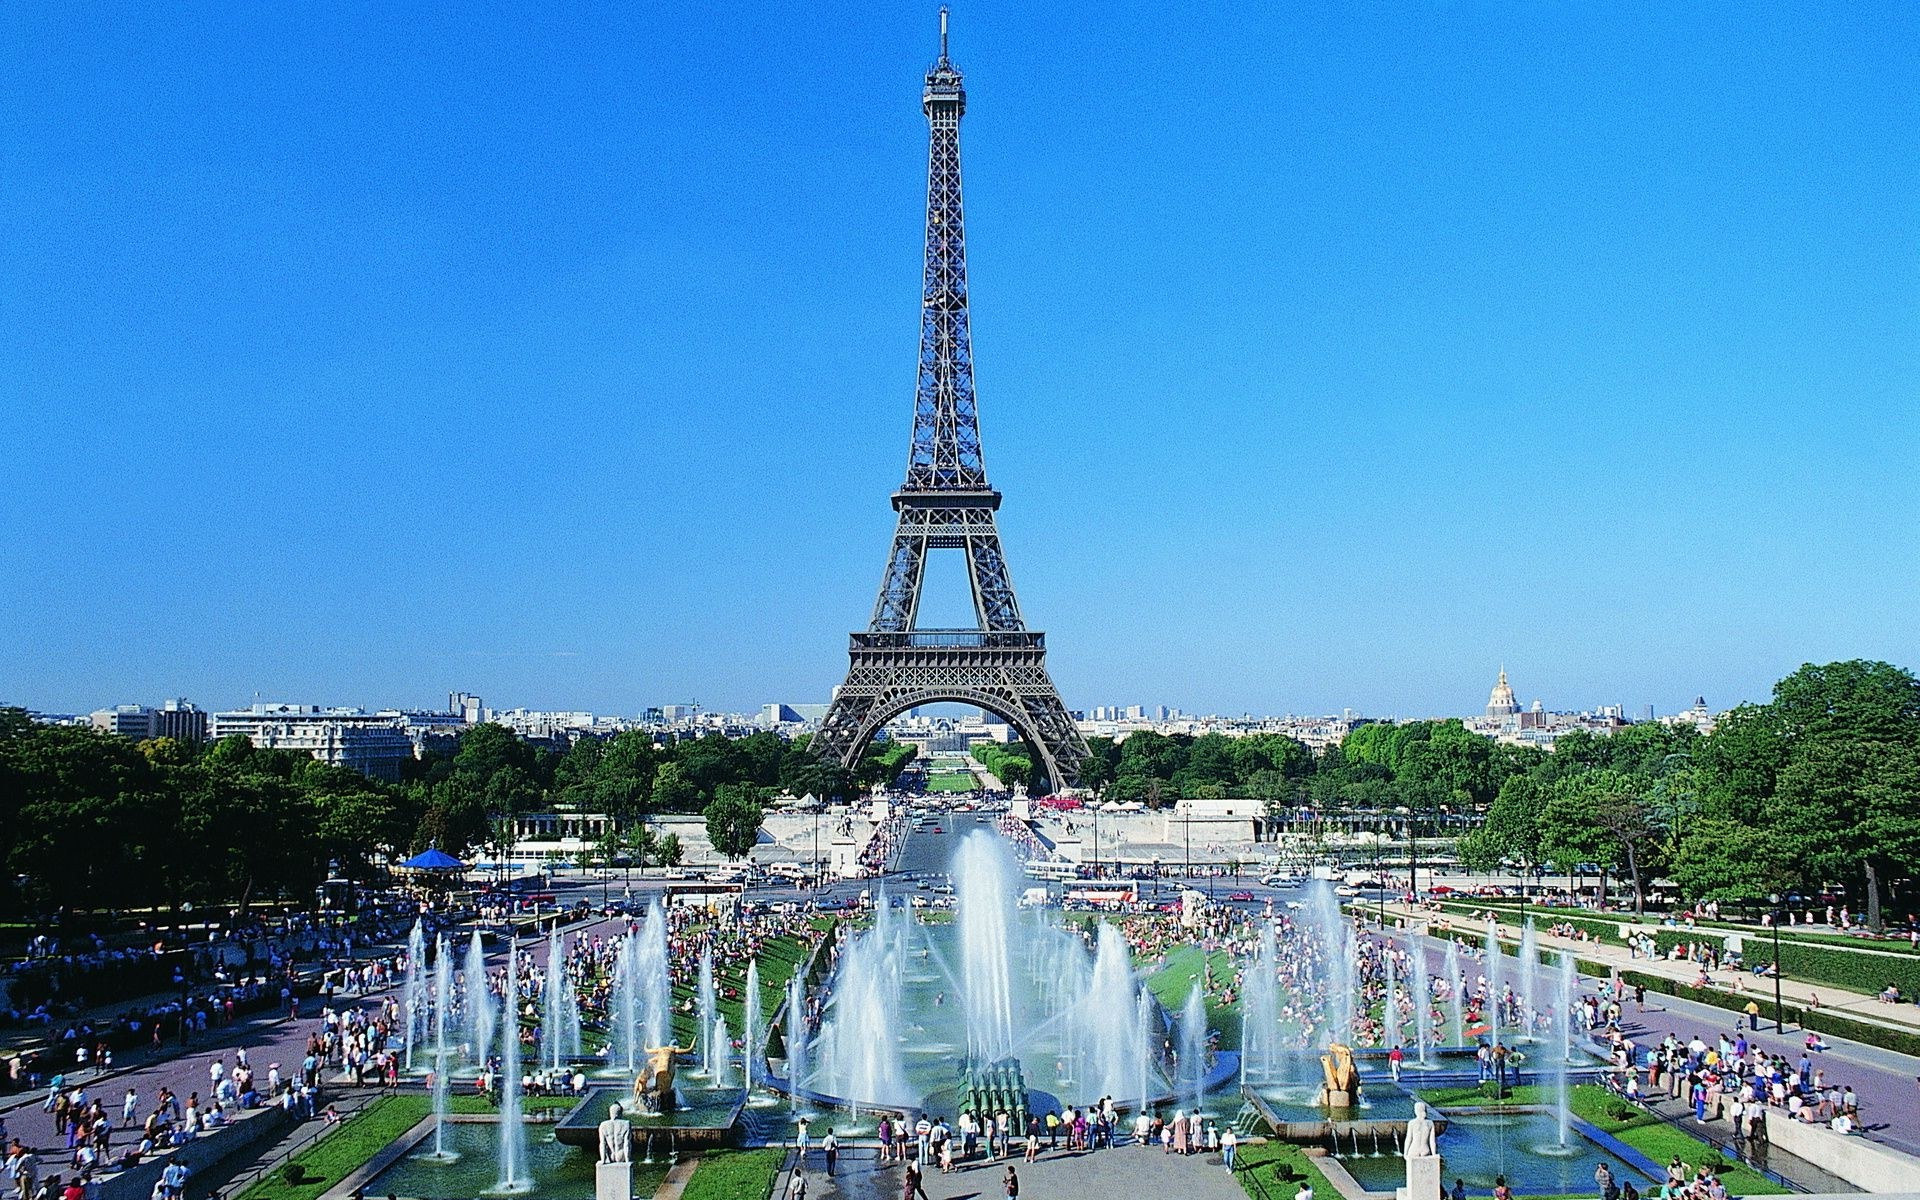 Eiffel Tower In Paris On The Background Of Summer